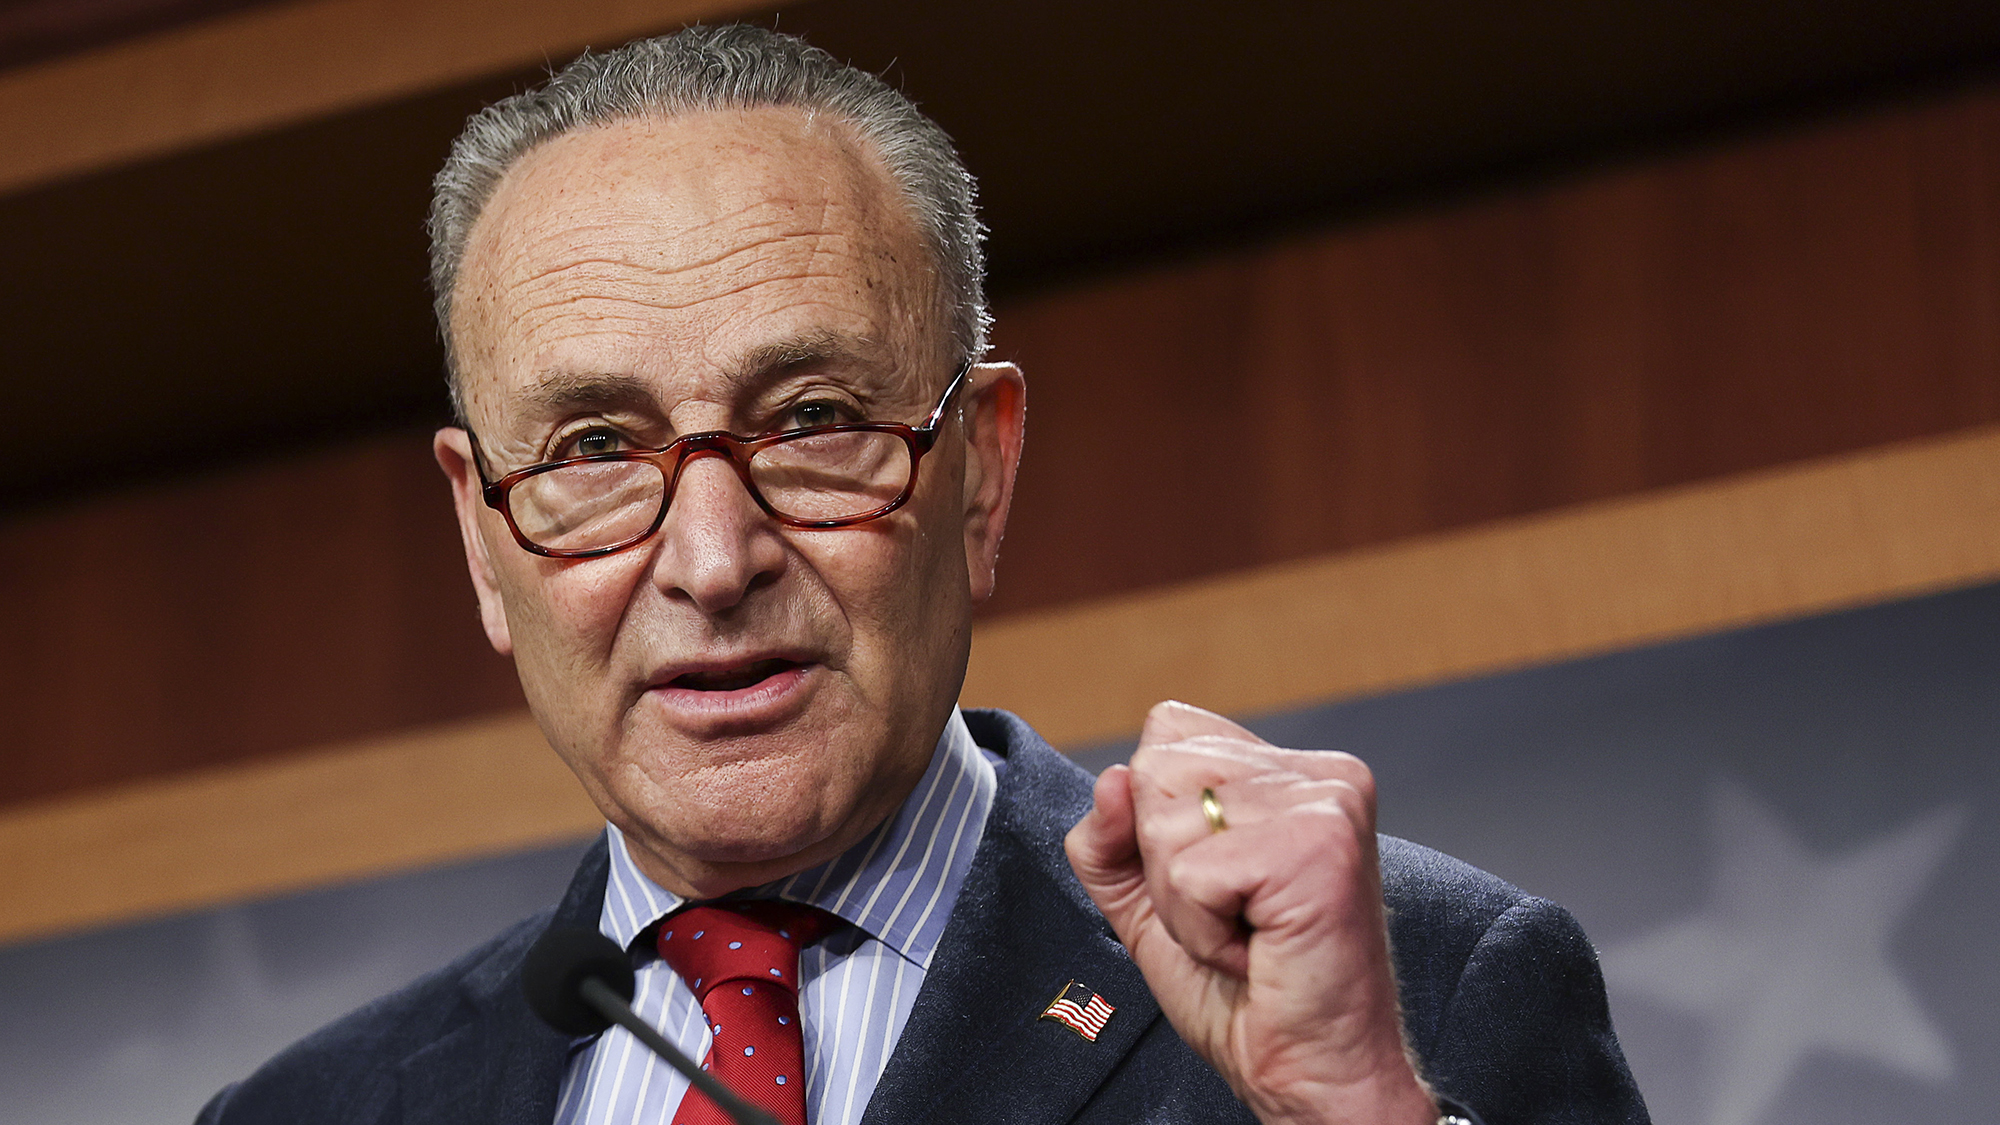 Senate Majority Leader Chuck Schumer (D-NY) speaks about Senate Democrats legislative accomplishments as he holds a news conference at the U.S. Capitol on March 25,  in Washington, DC.